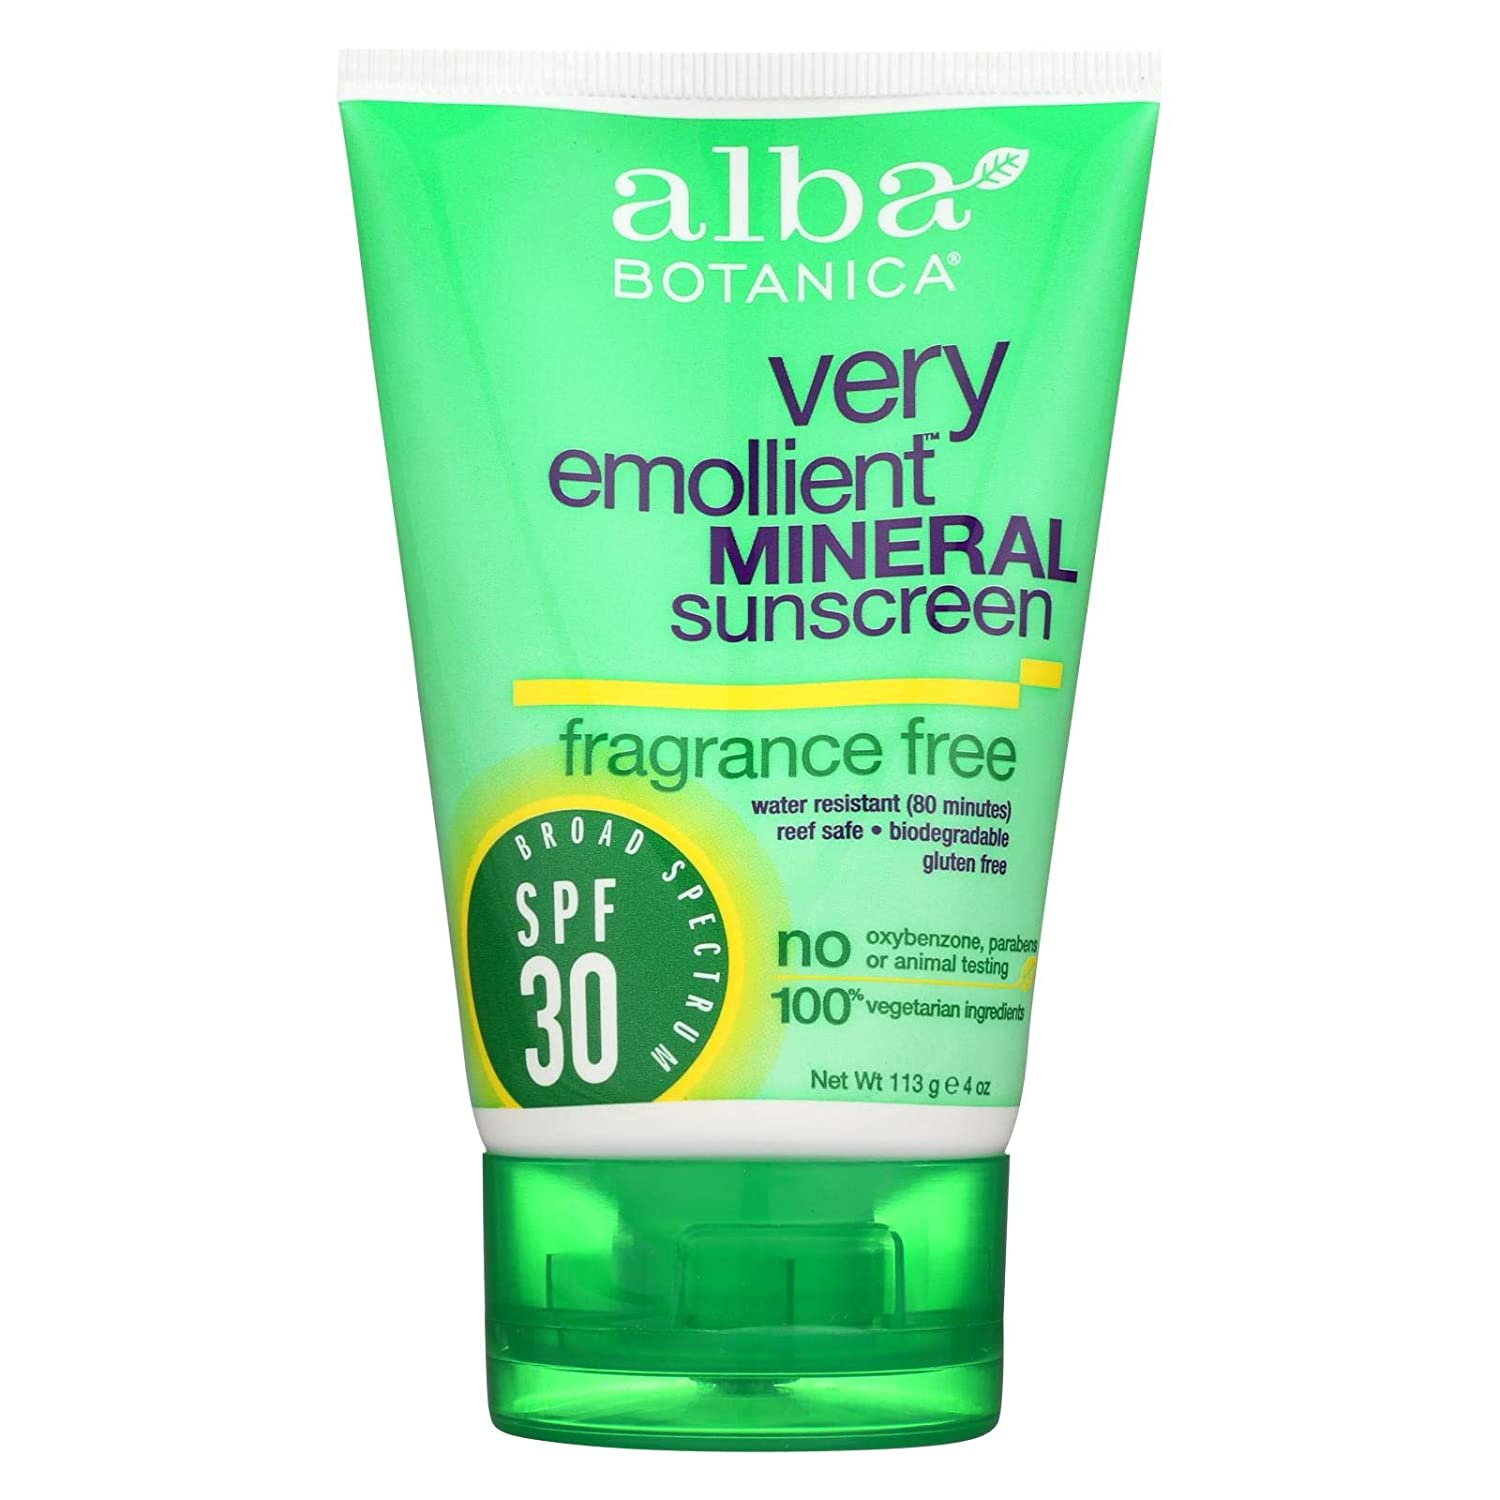 Alba Botanica Sensitive Mineral Sunscreen Fragrance Free, SPF 30 4 oz